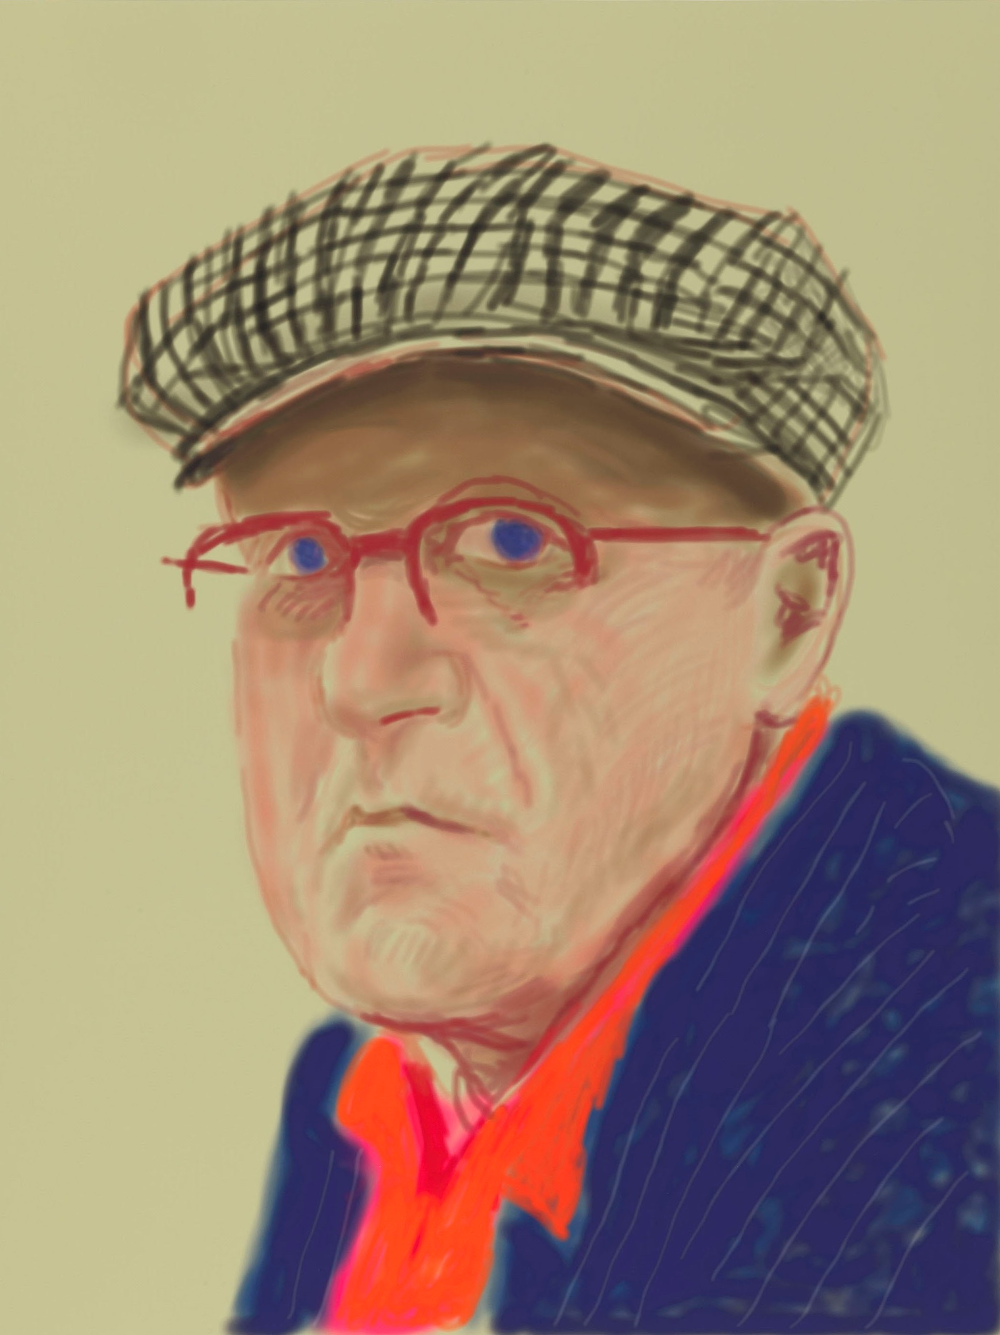 David Hockney's Life in Drawing